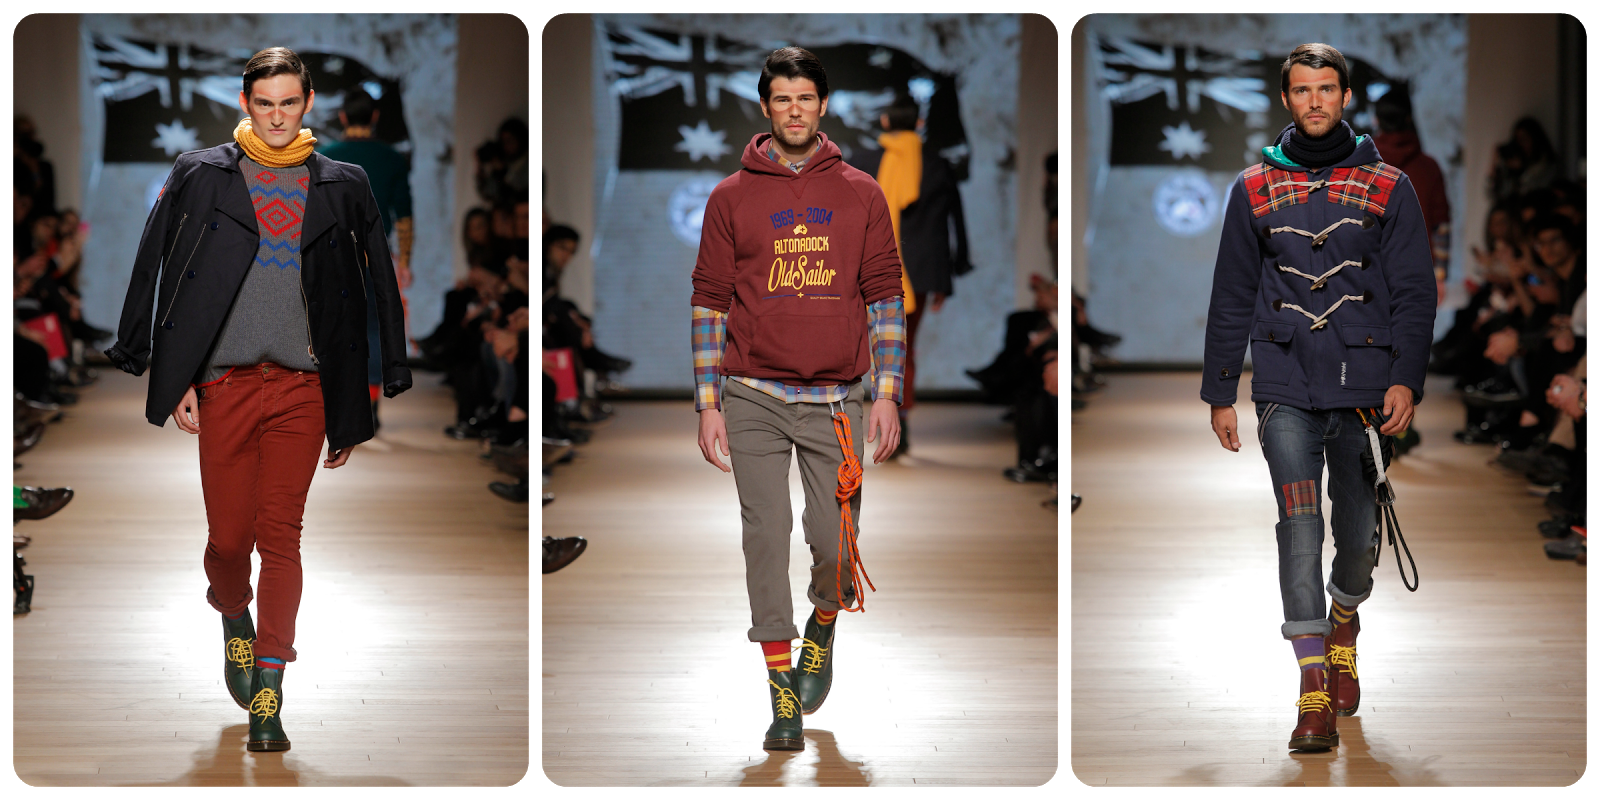 Poco Altona Javito Andcool Moda Masculina Madrid Fashion Show Men